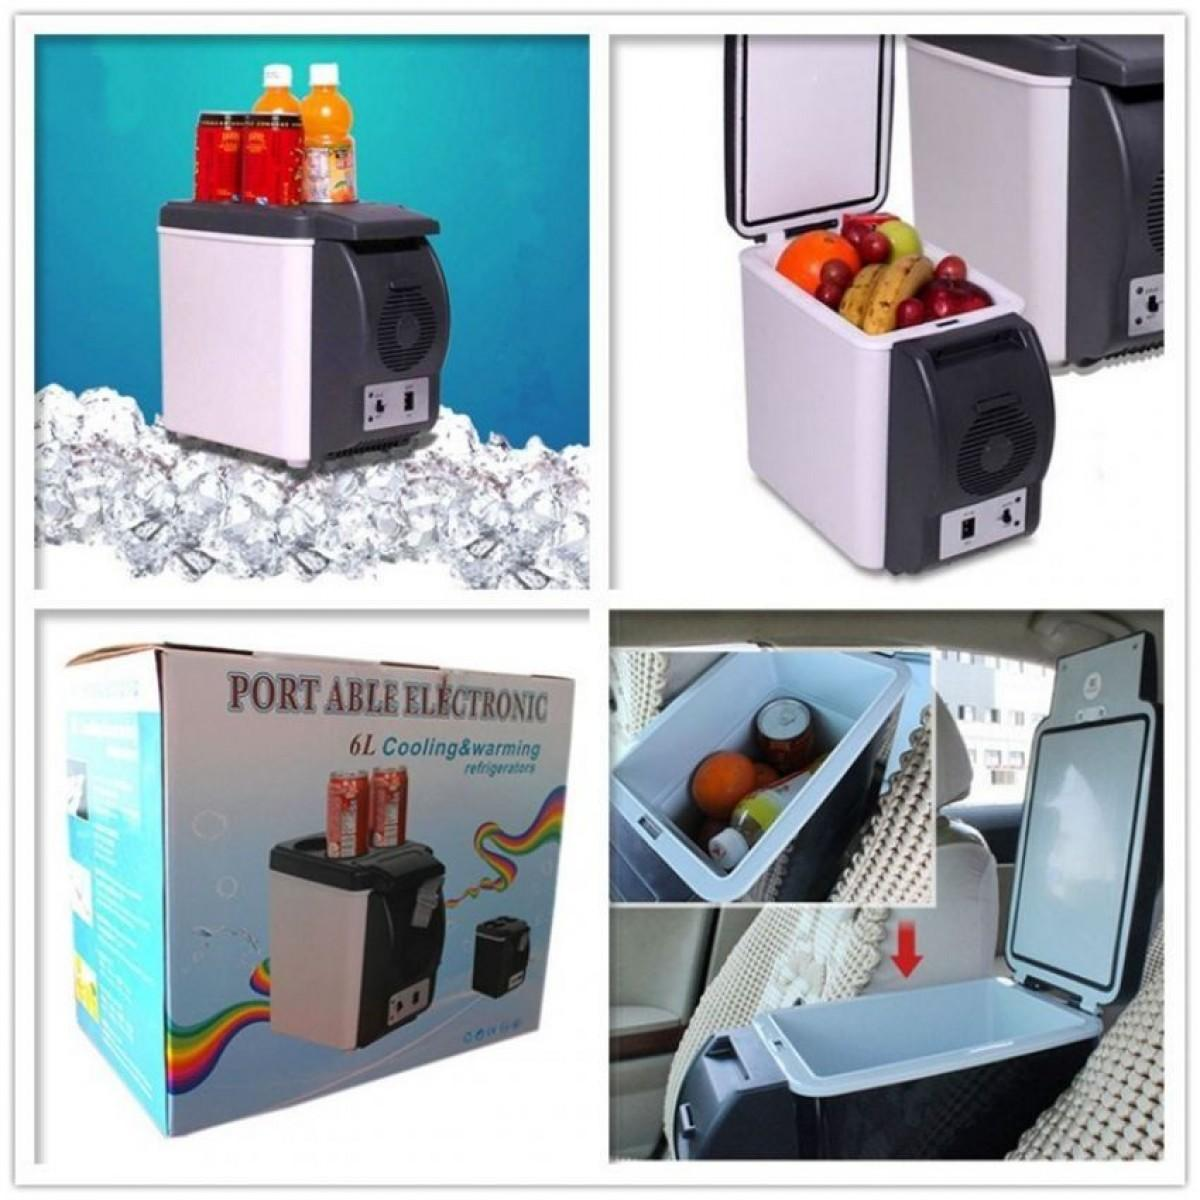 Mini Fridge For Car And Rural Health Post - Vaccine cooling DC